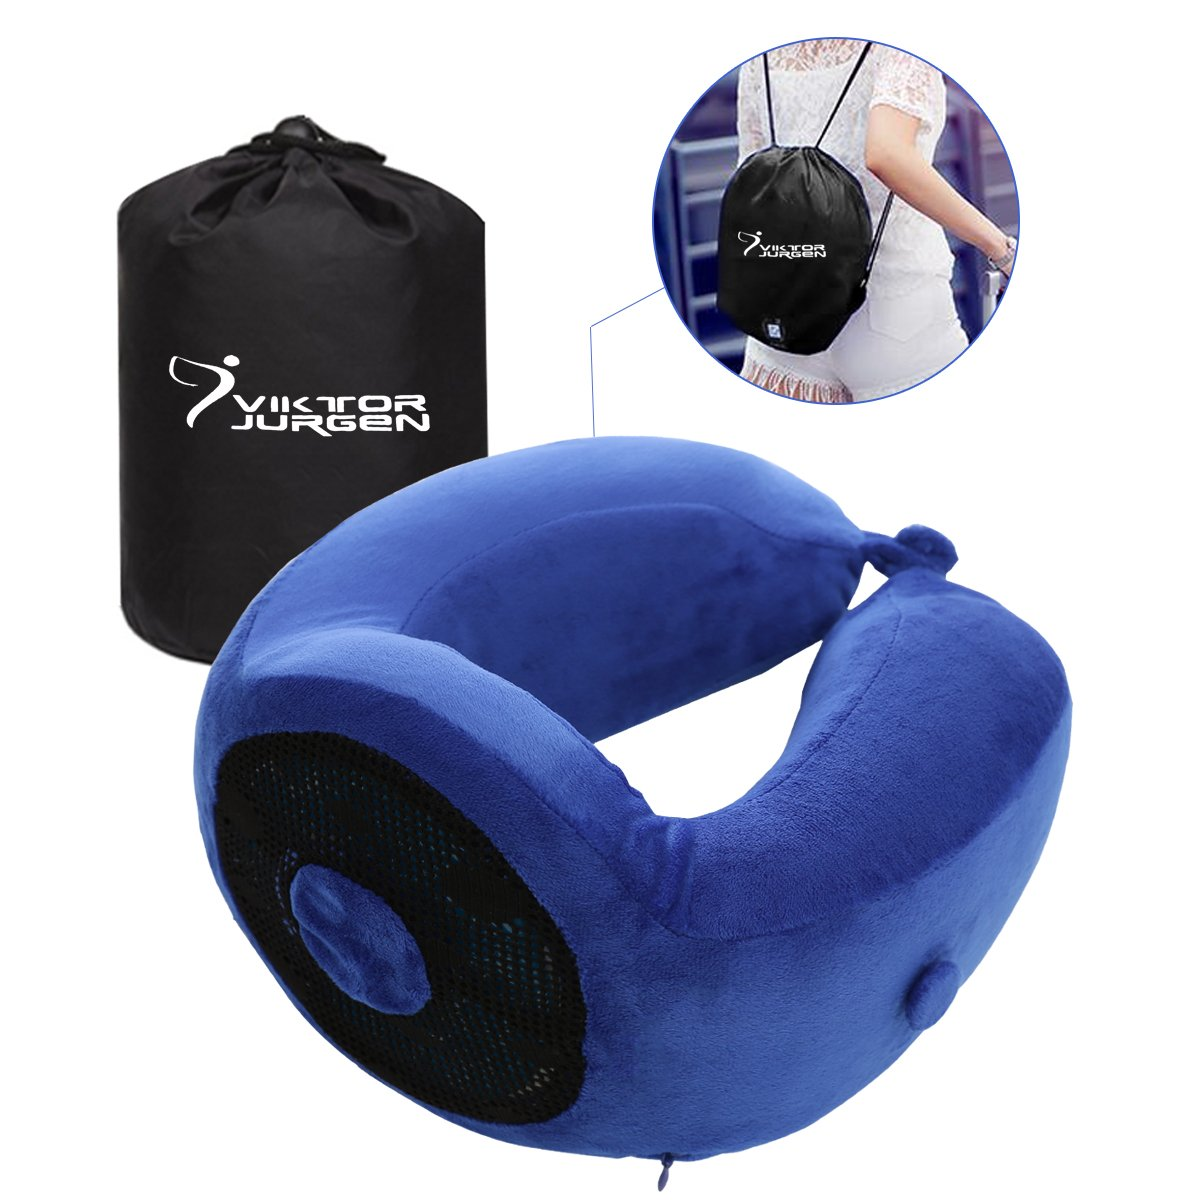 VIKTOR JURGEN Travel Neck Pillow Memory Foam and Cooling Gel Pillows with Head & Neck Support - Designed for Airplane/ Car/ Bus/ Train/ Office Rest and School Napping